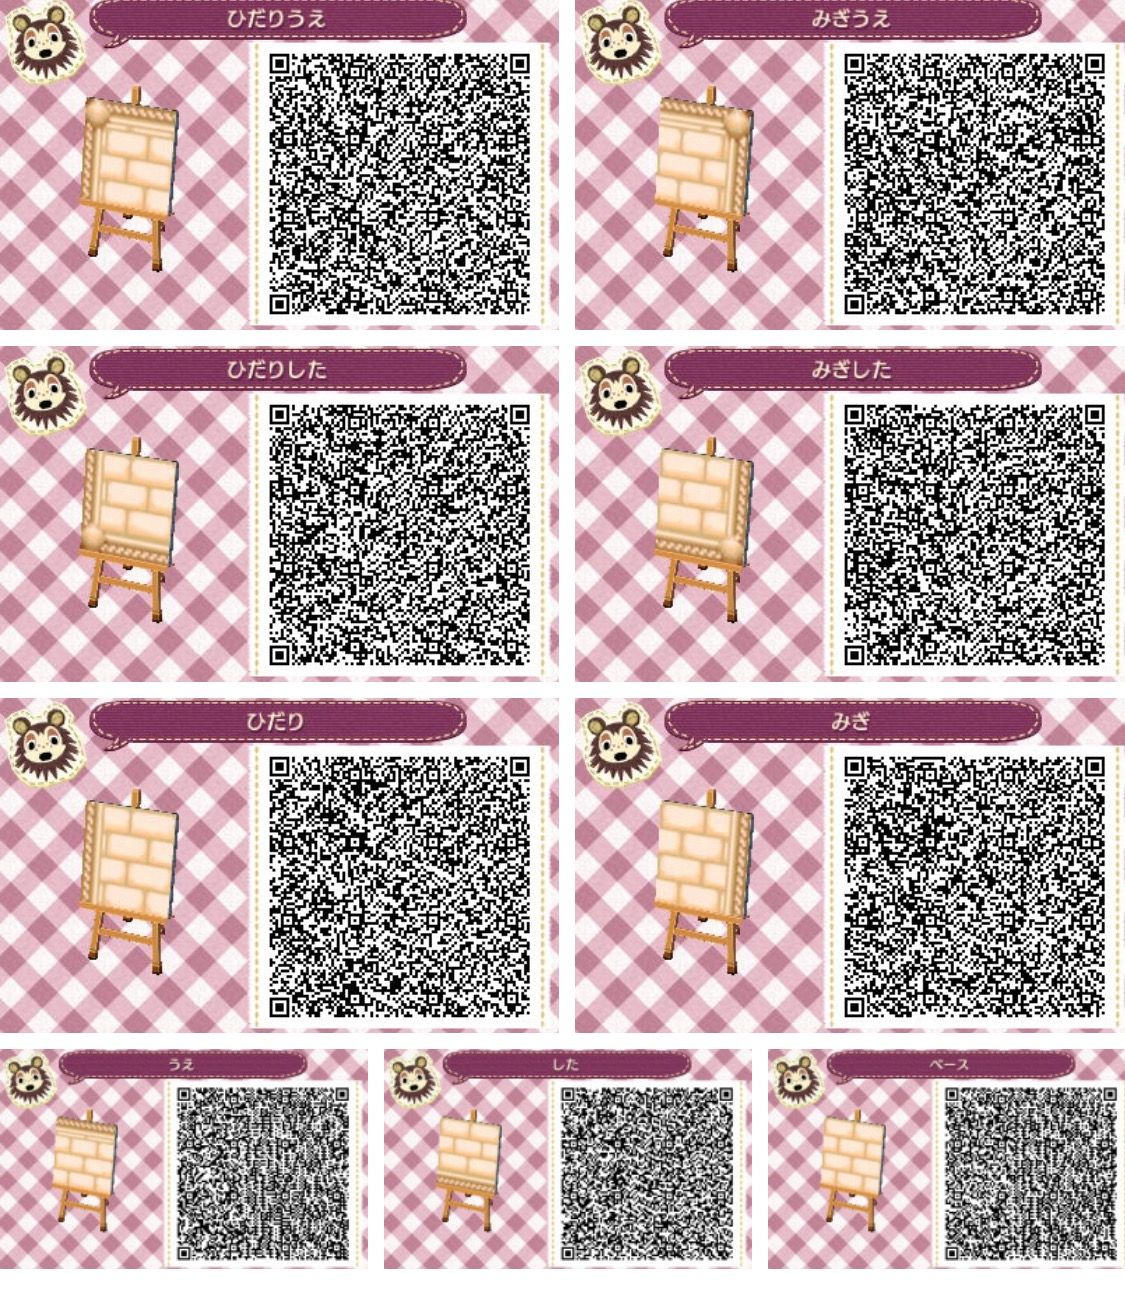 Pin by nancy everly on animal crossing new leaf for Floor qr codes new leaf